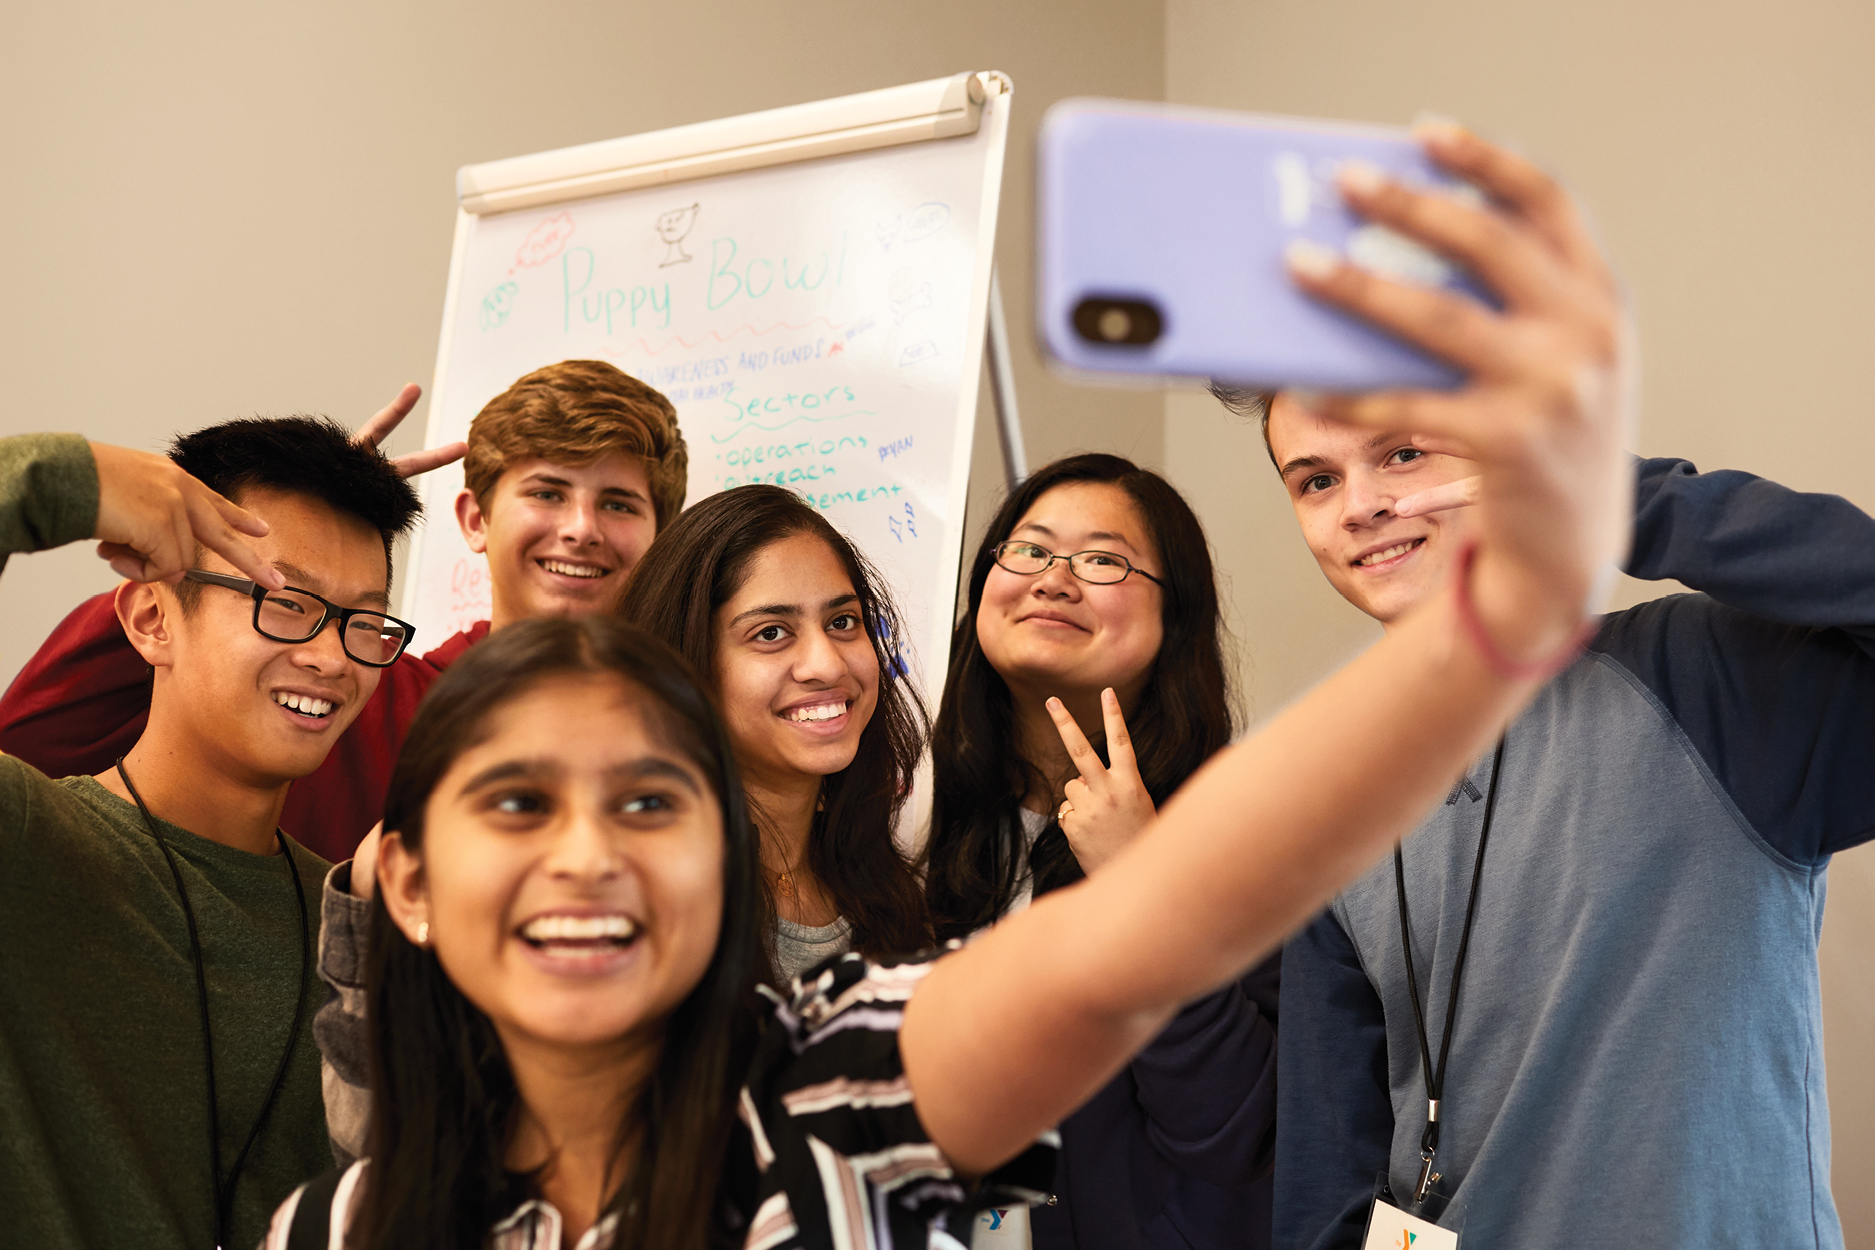 A group of middle school students smiling and posing for a selfie